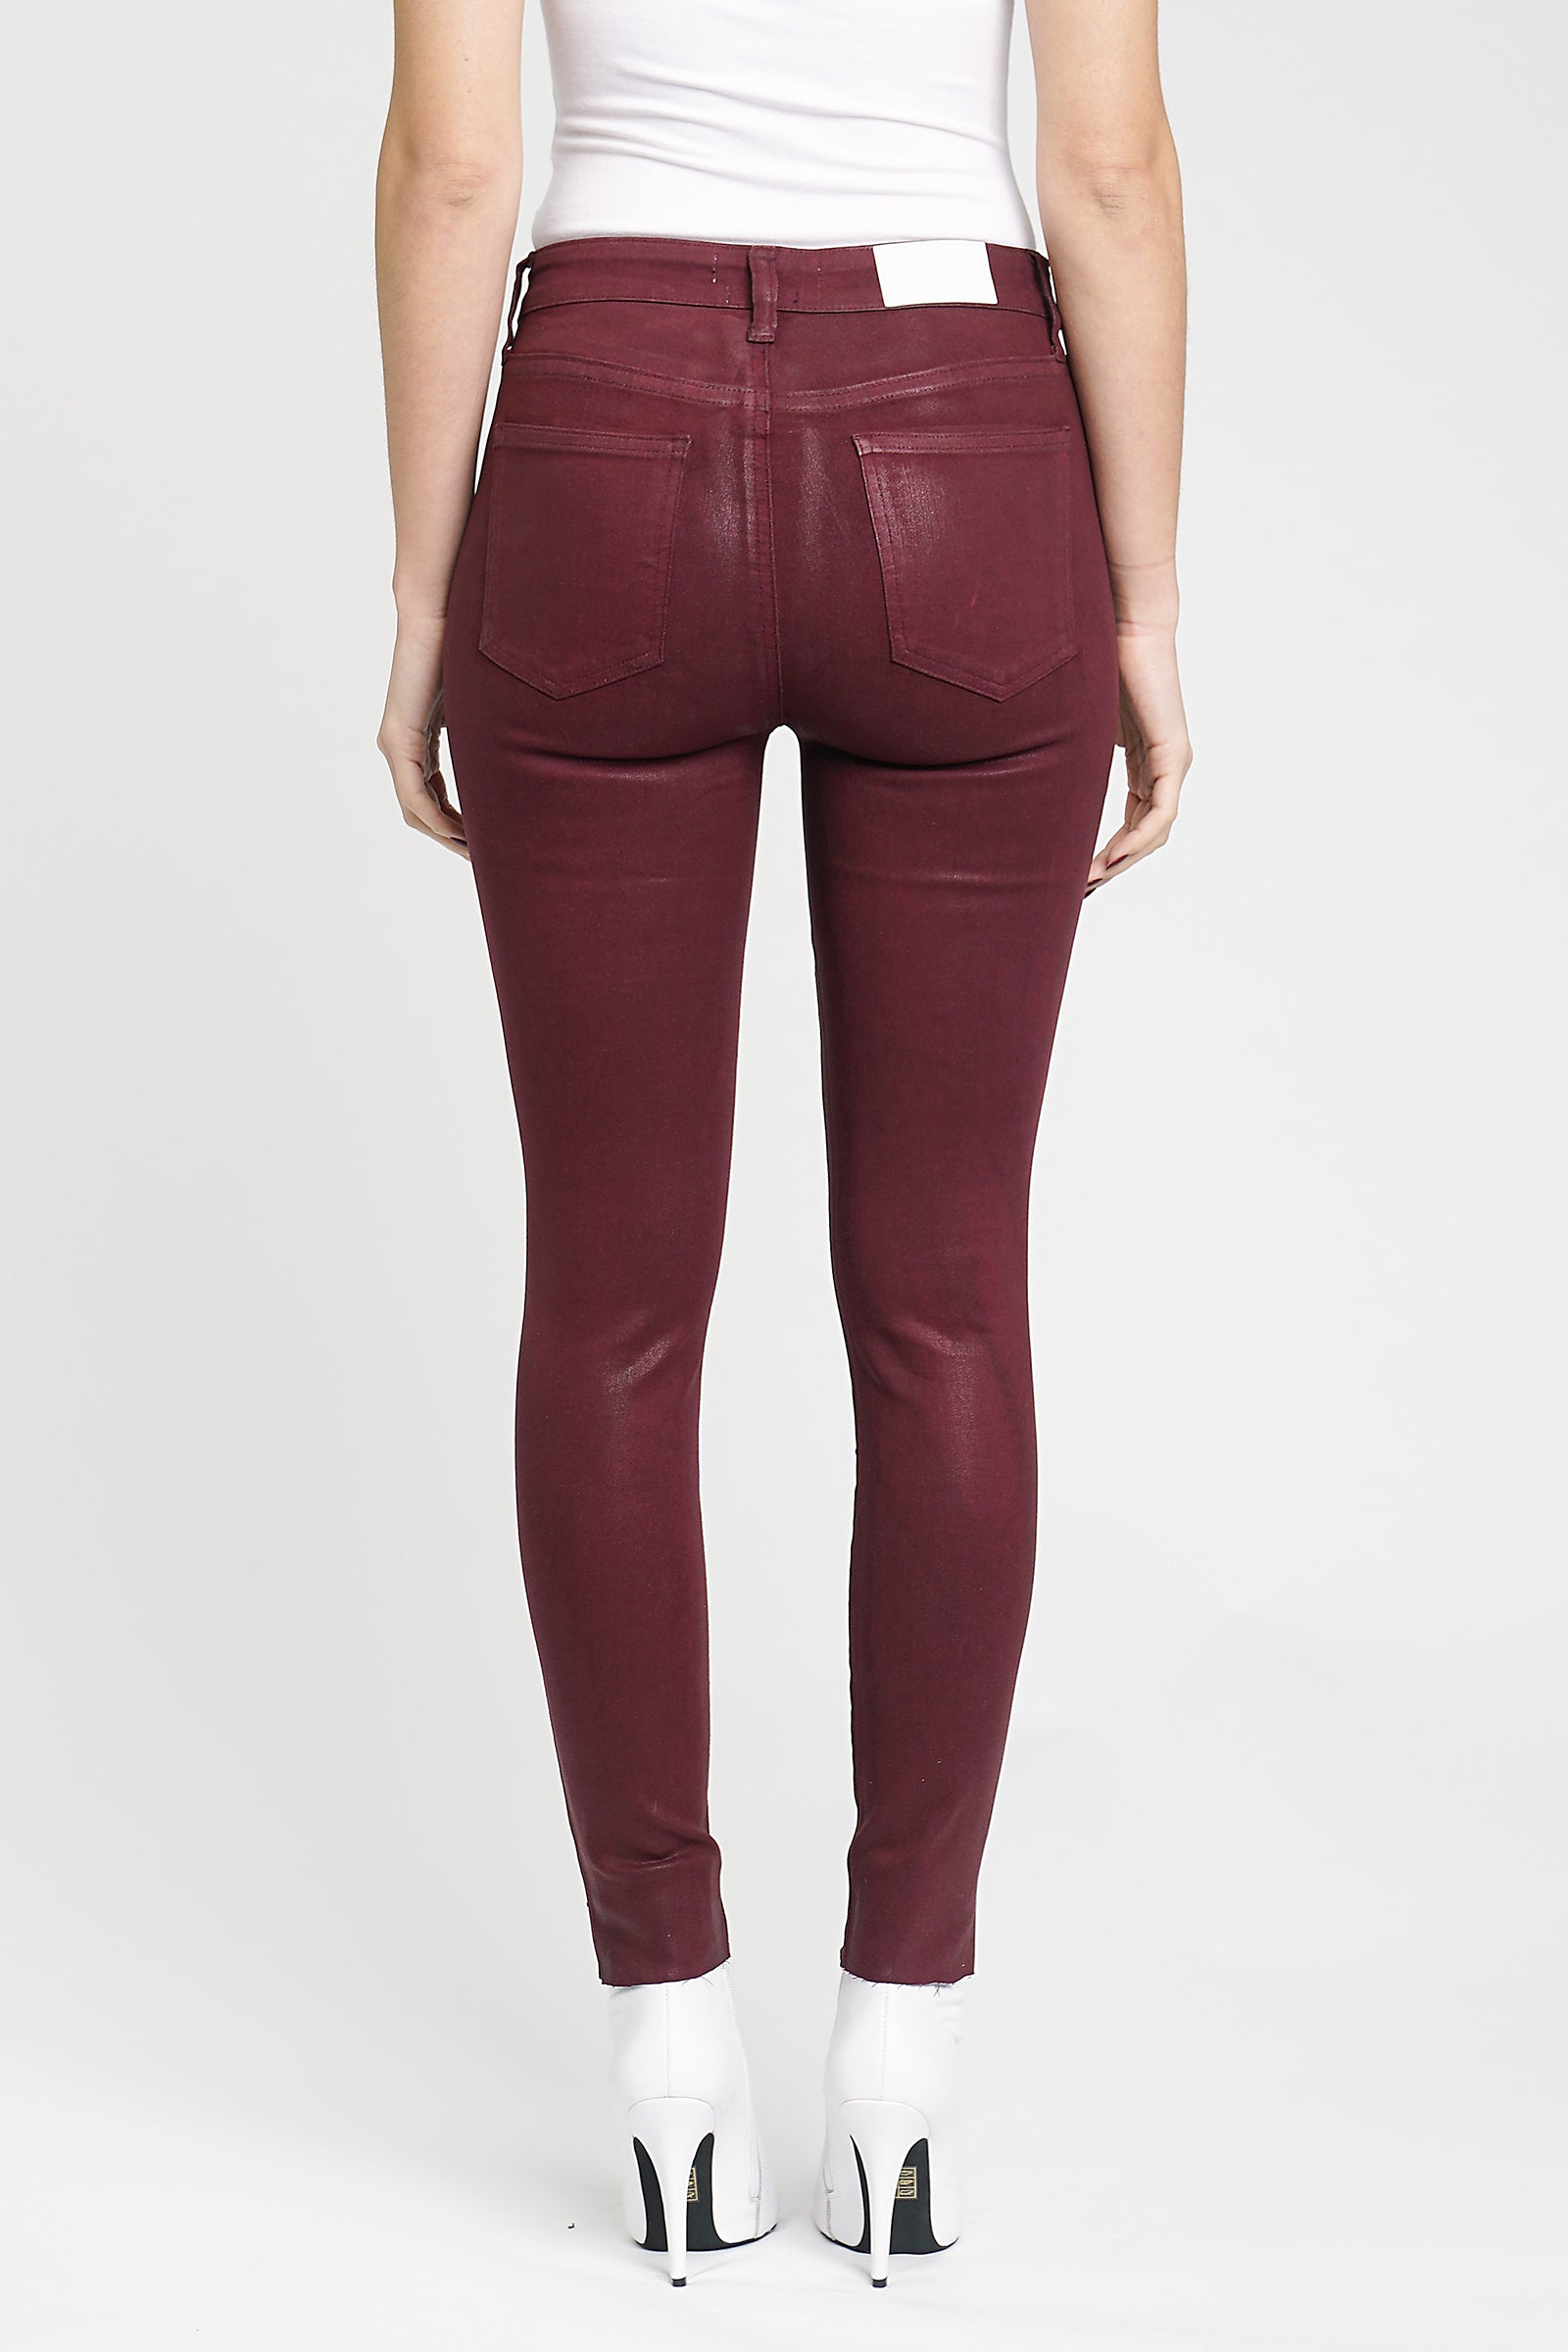 Aline High Rise Skinny - Coated Syrah